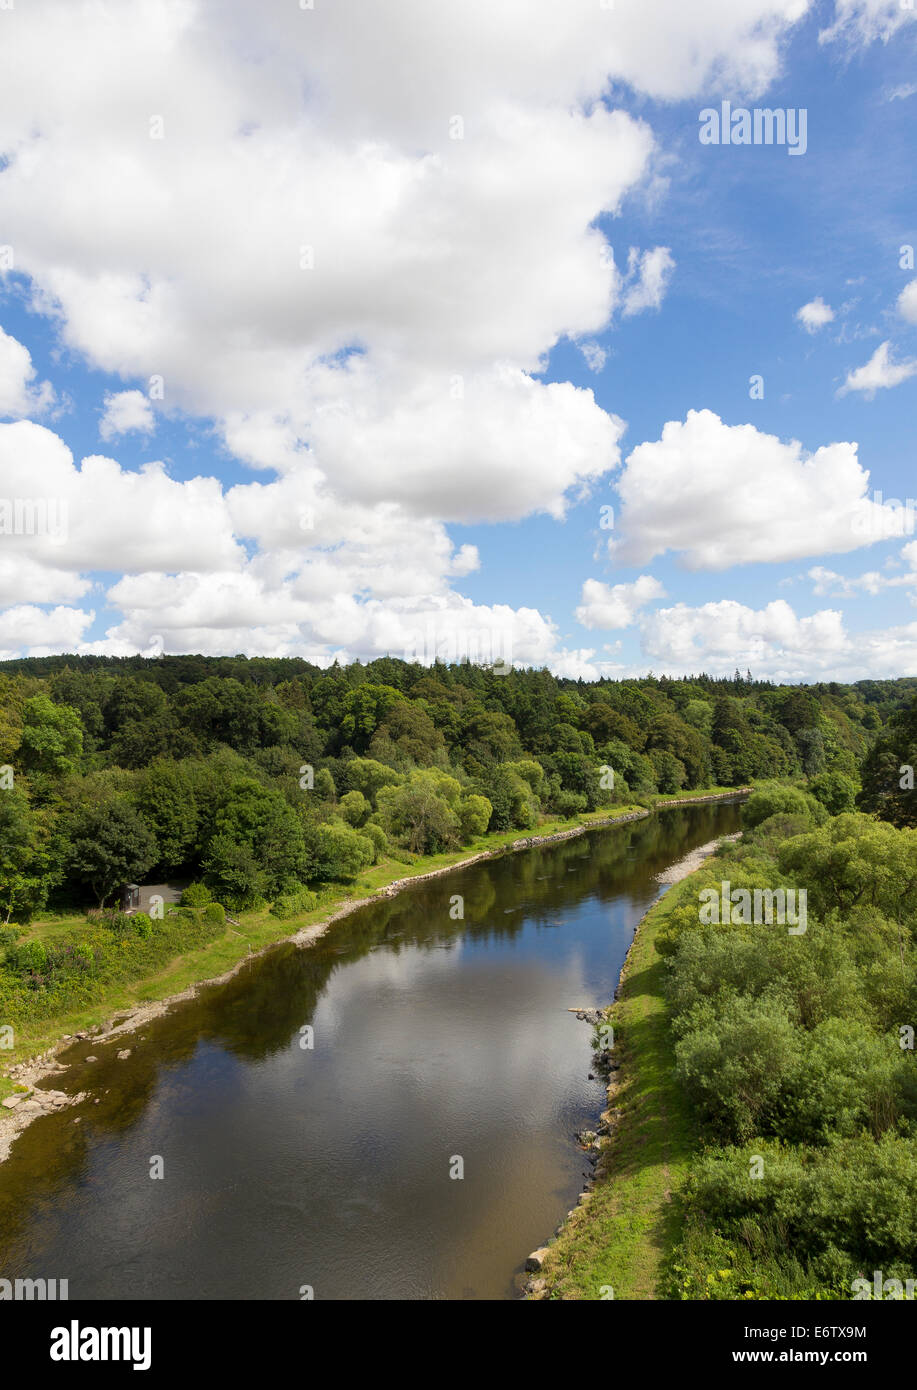 The River Tweed pictured from the A68 at Leaderfoot - Stock Image